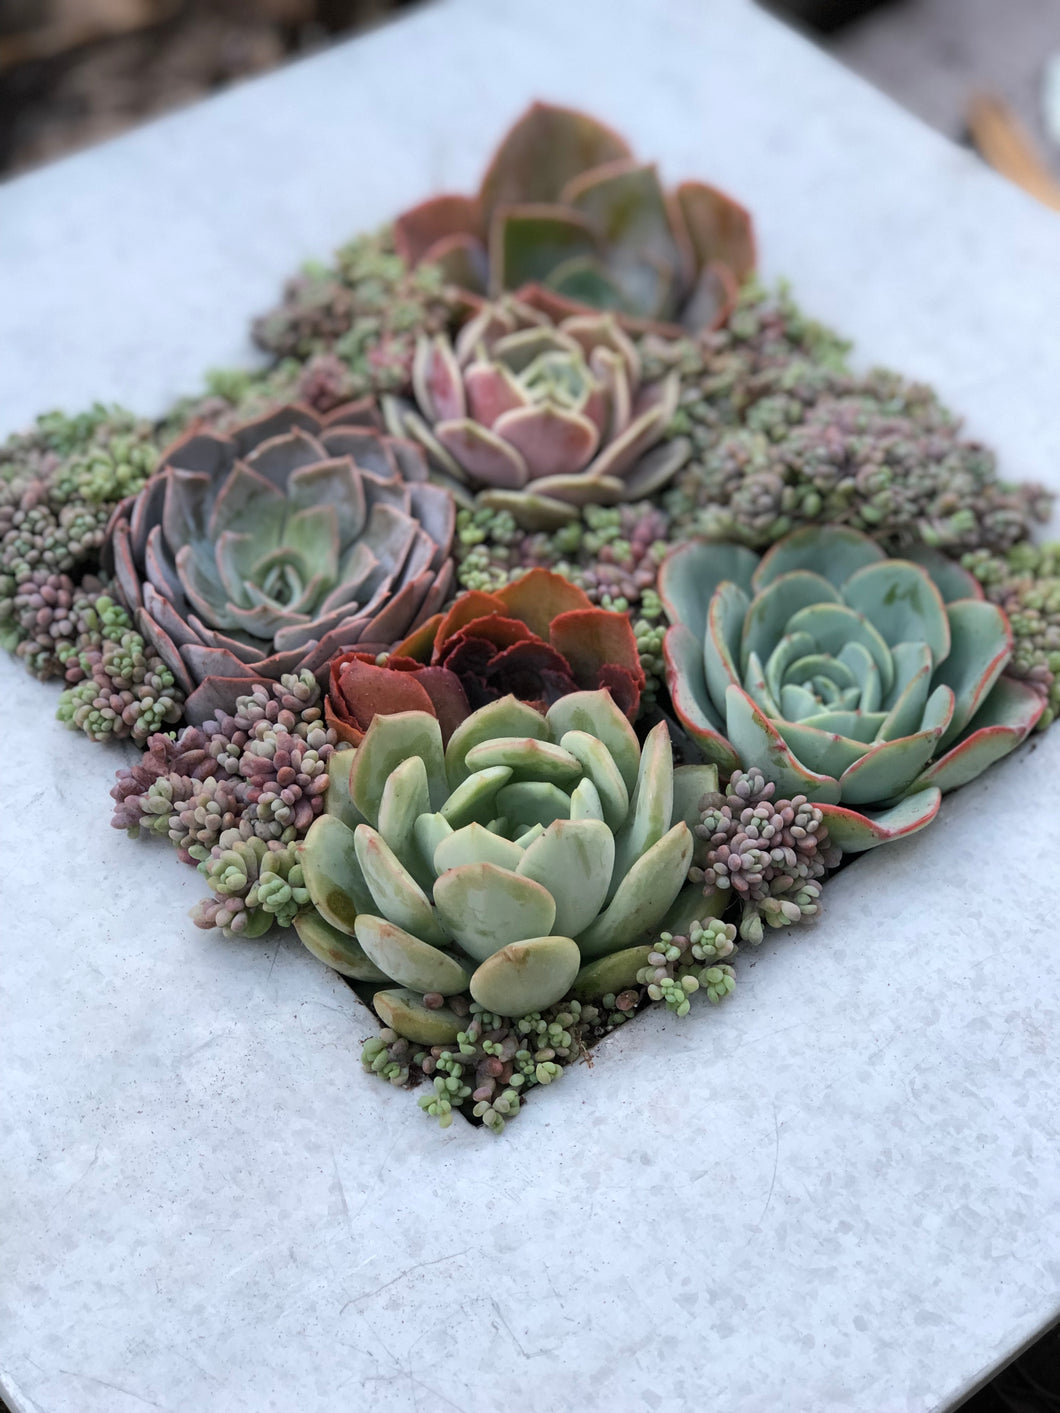 DIY Succulent Wall Kit